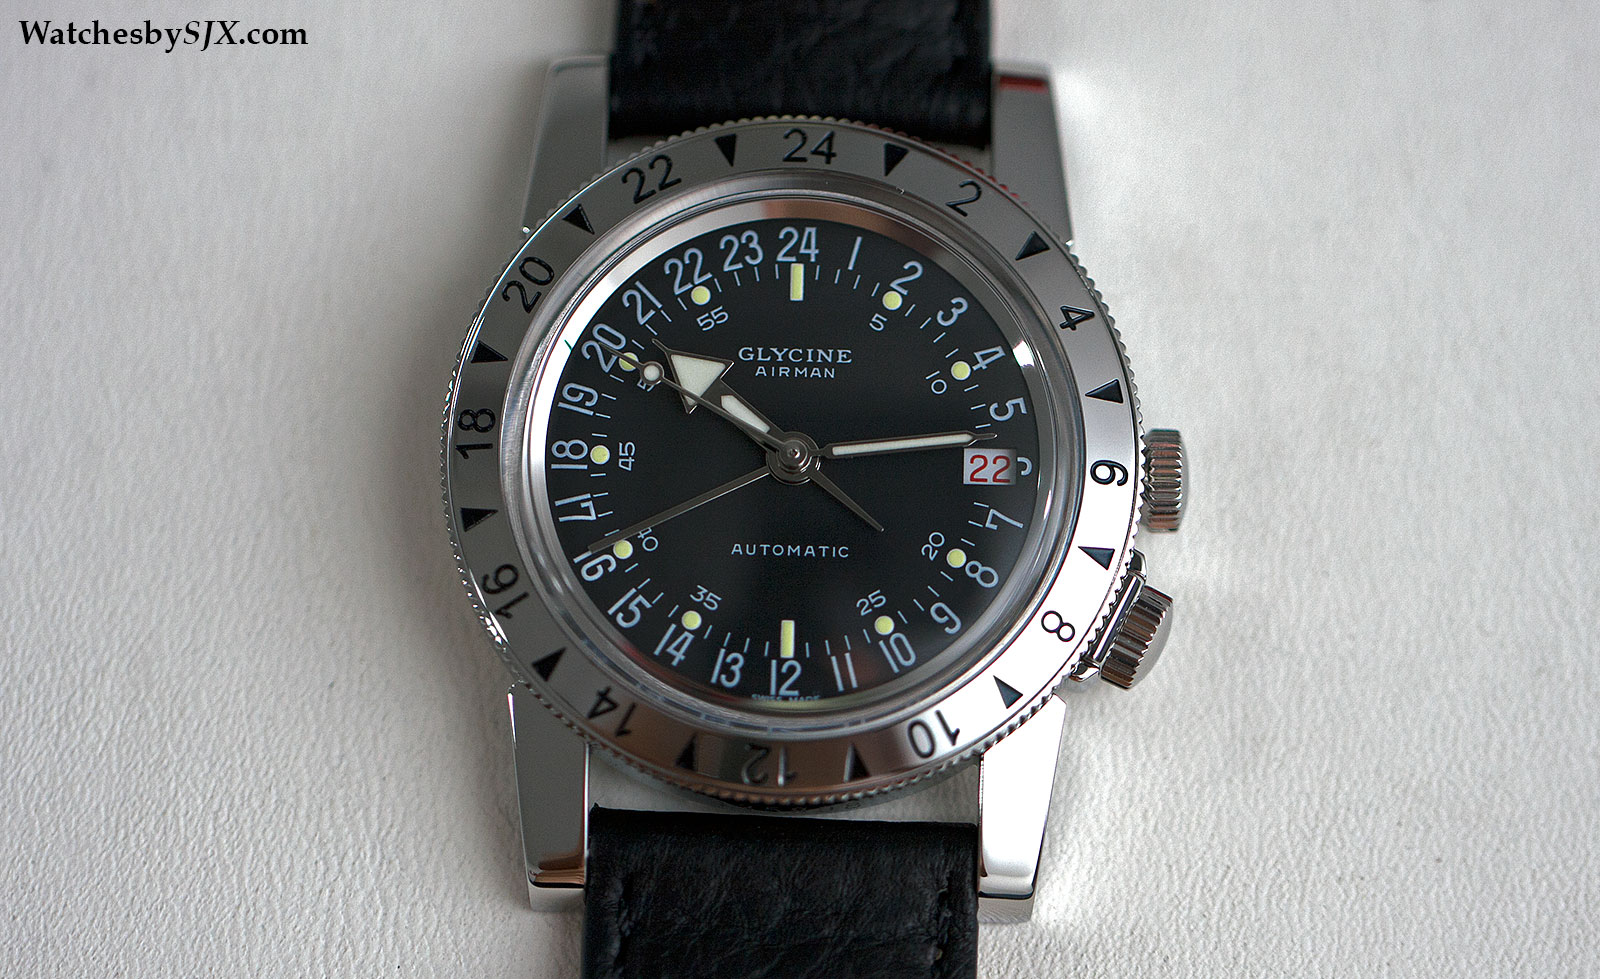 Glycine-Airman-No-1-reissue